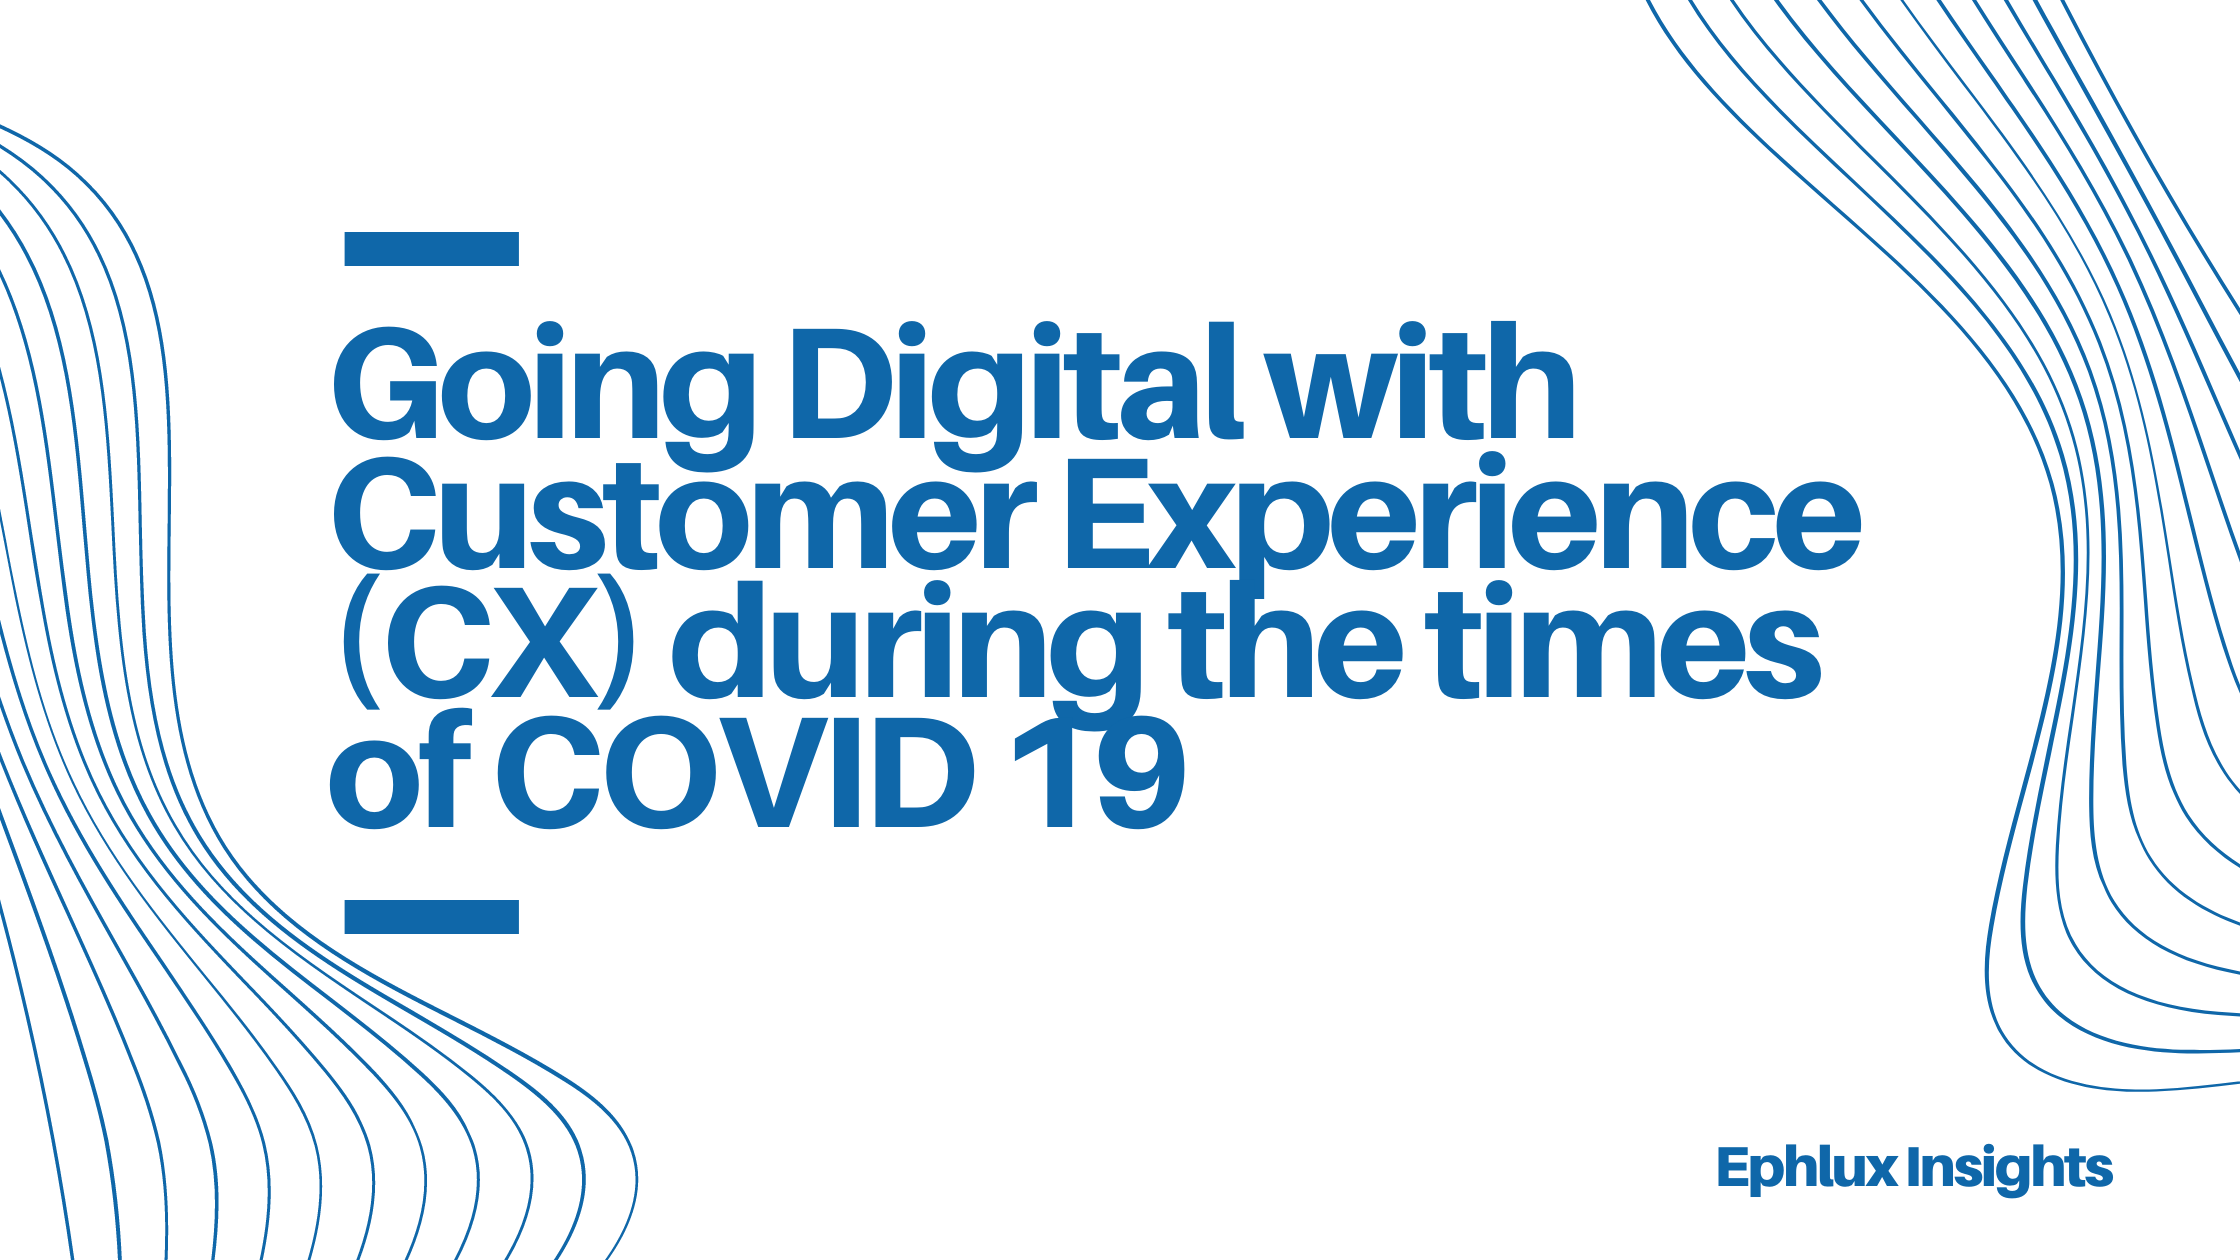 Going Digital with Customer Experience (CX) during the times of COVID 19